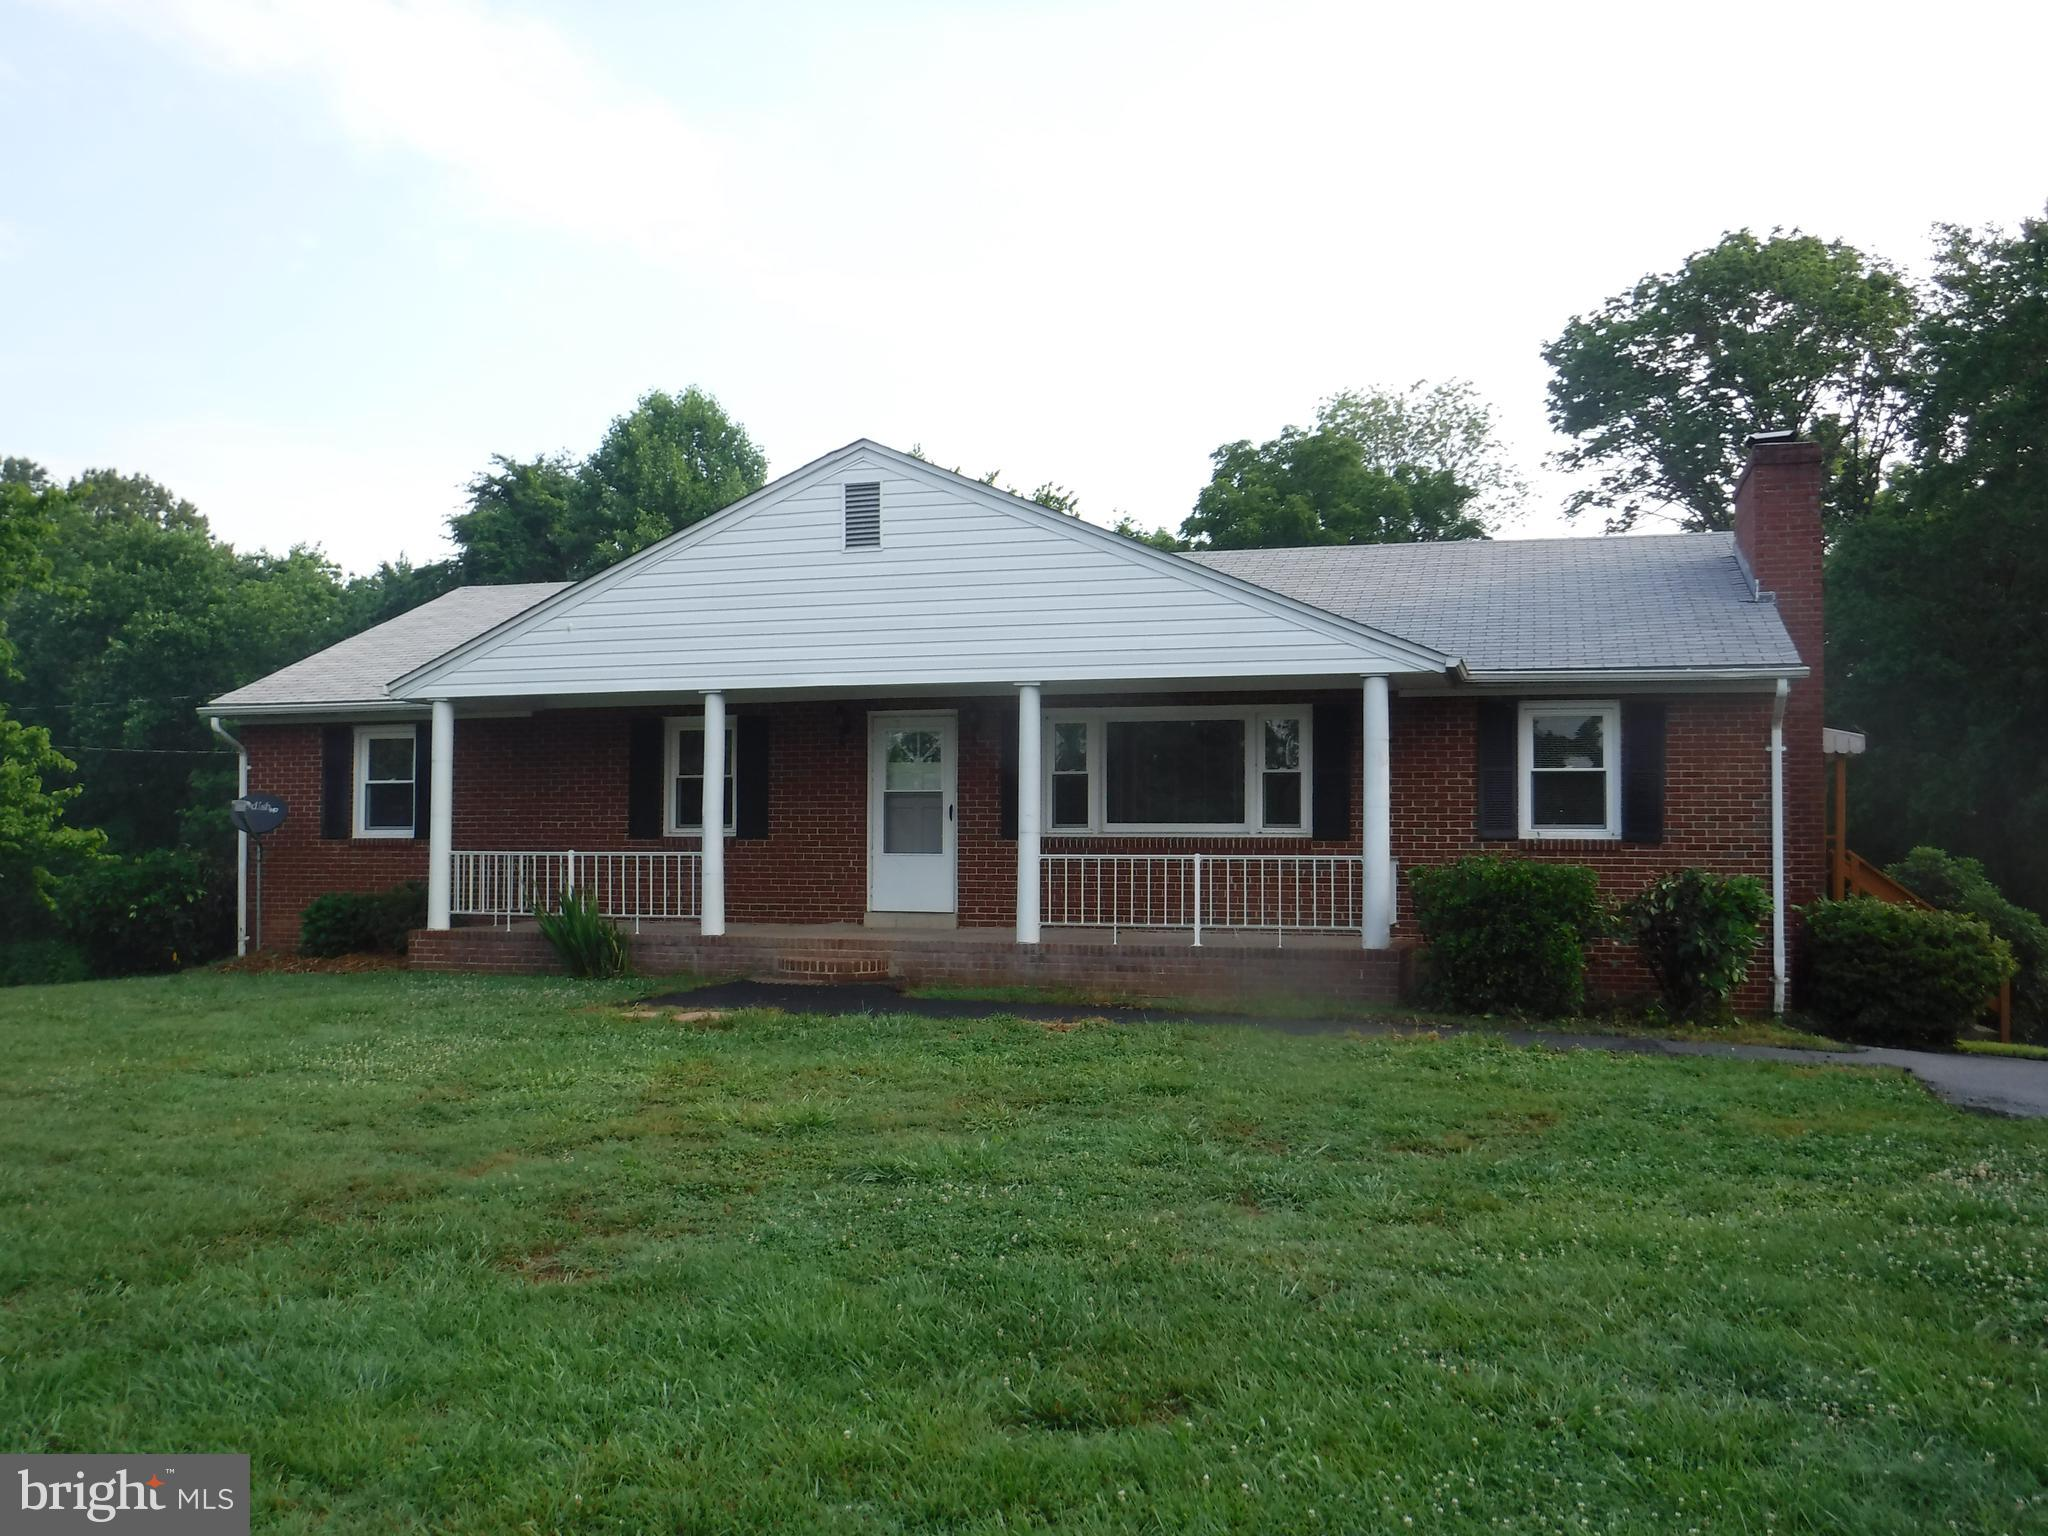 29101 ELEYS FORD ROAD, RICHARDSVILLE, VA 22736